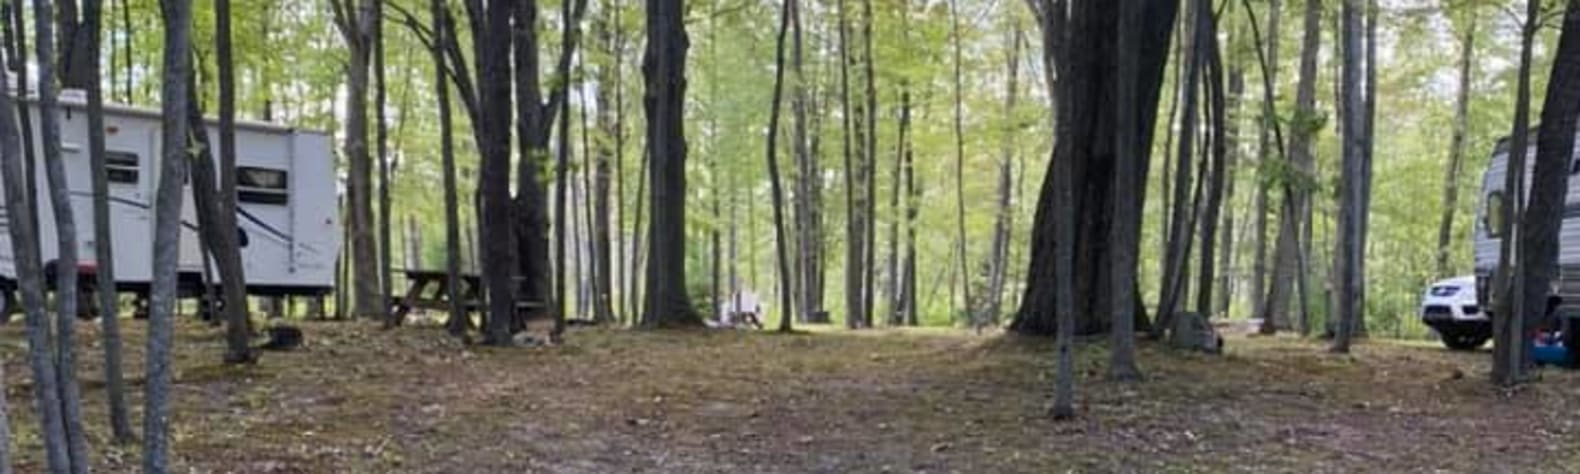 The Lost Oaks Campground